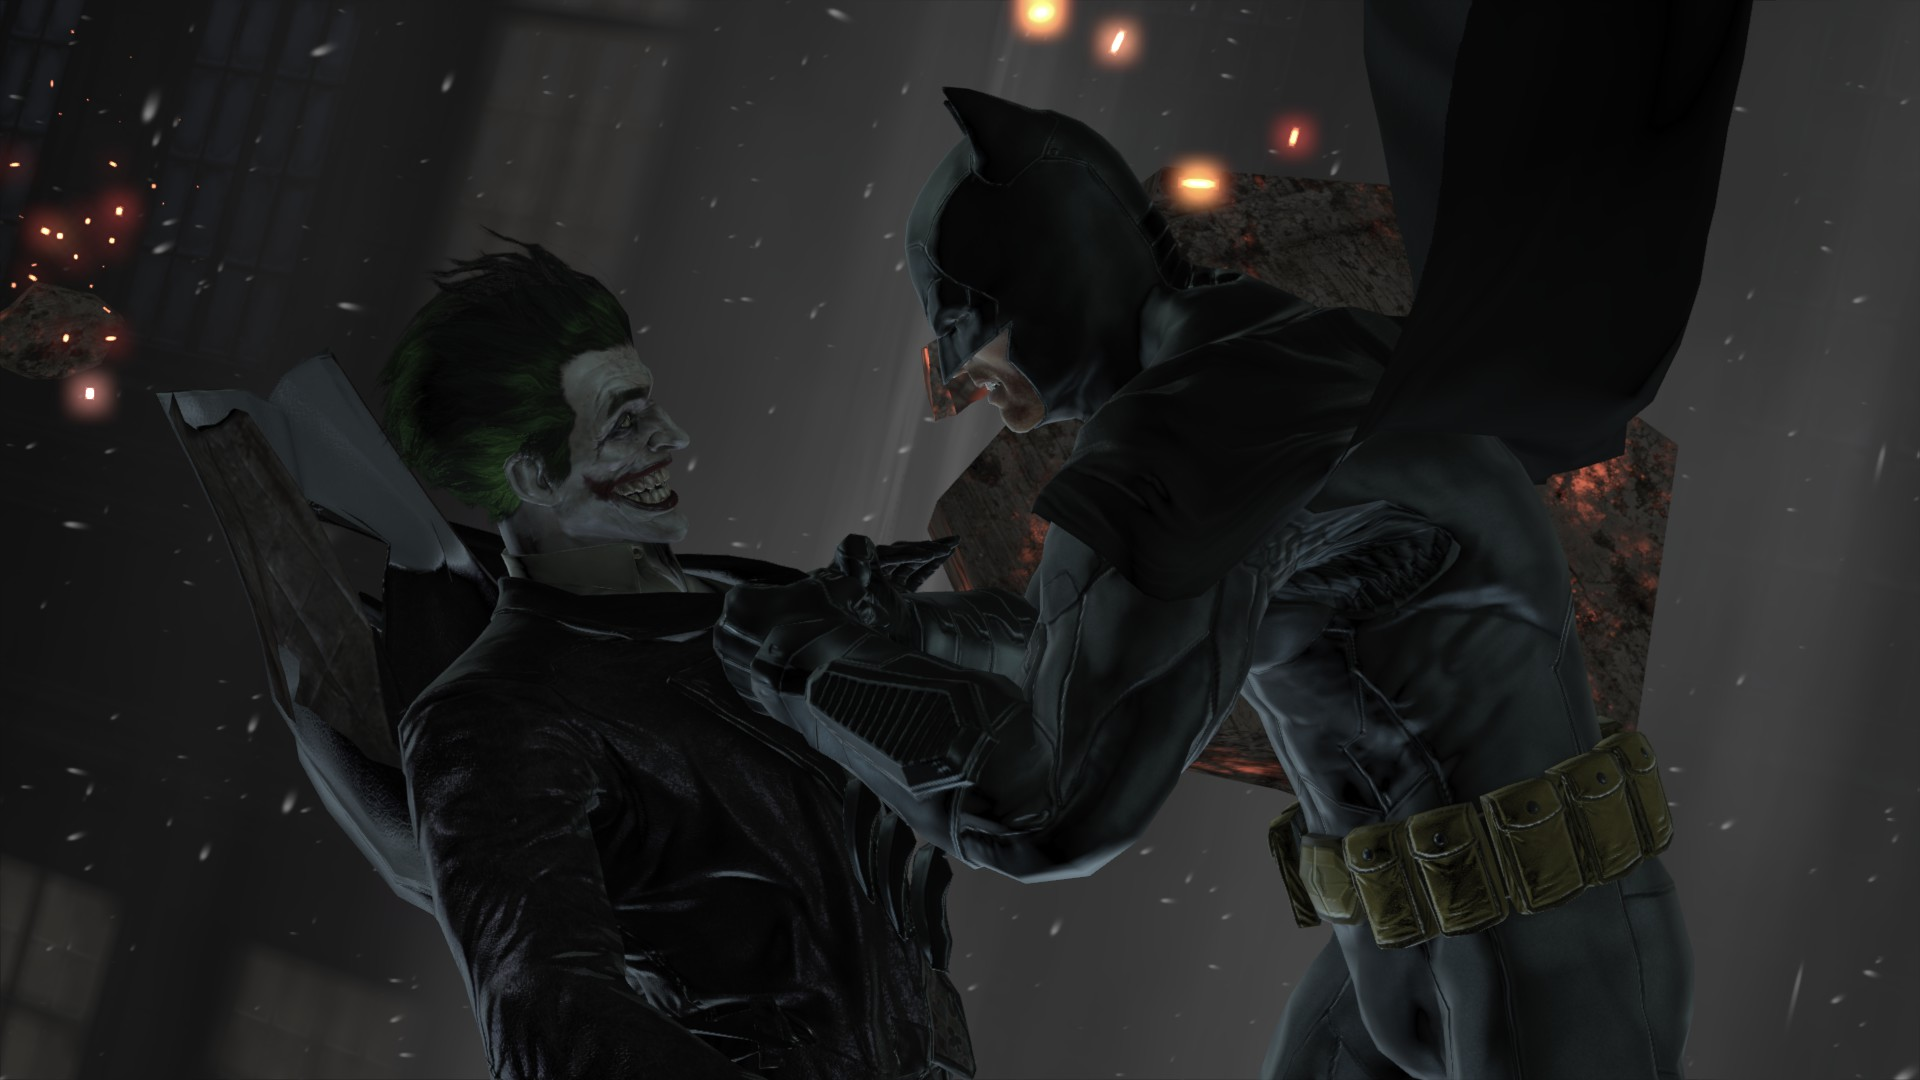 Batman And Joker - Batman: Arkham Origins